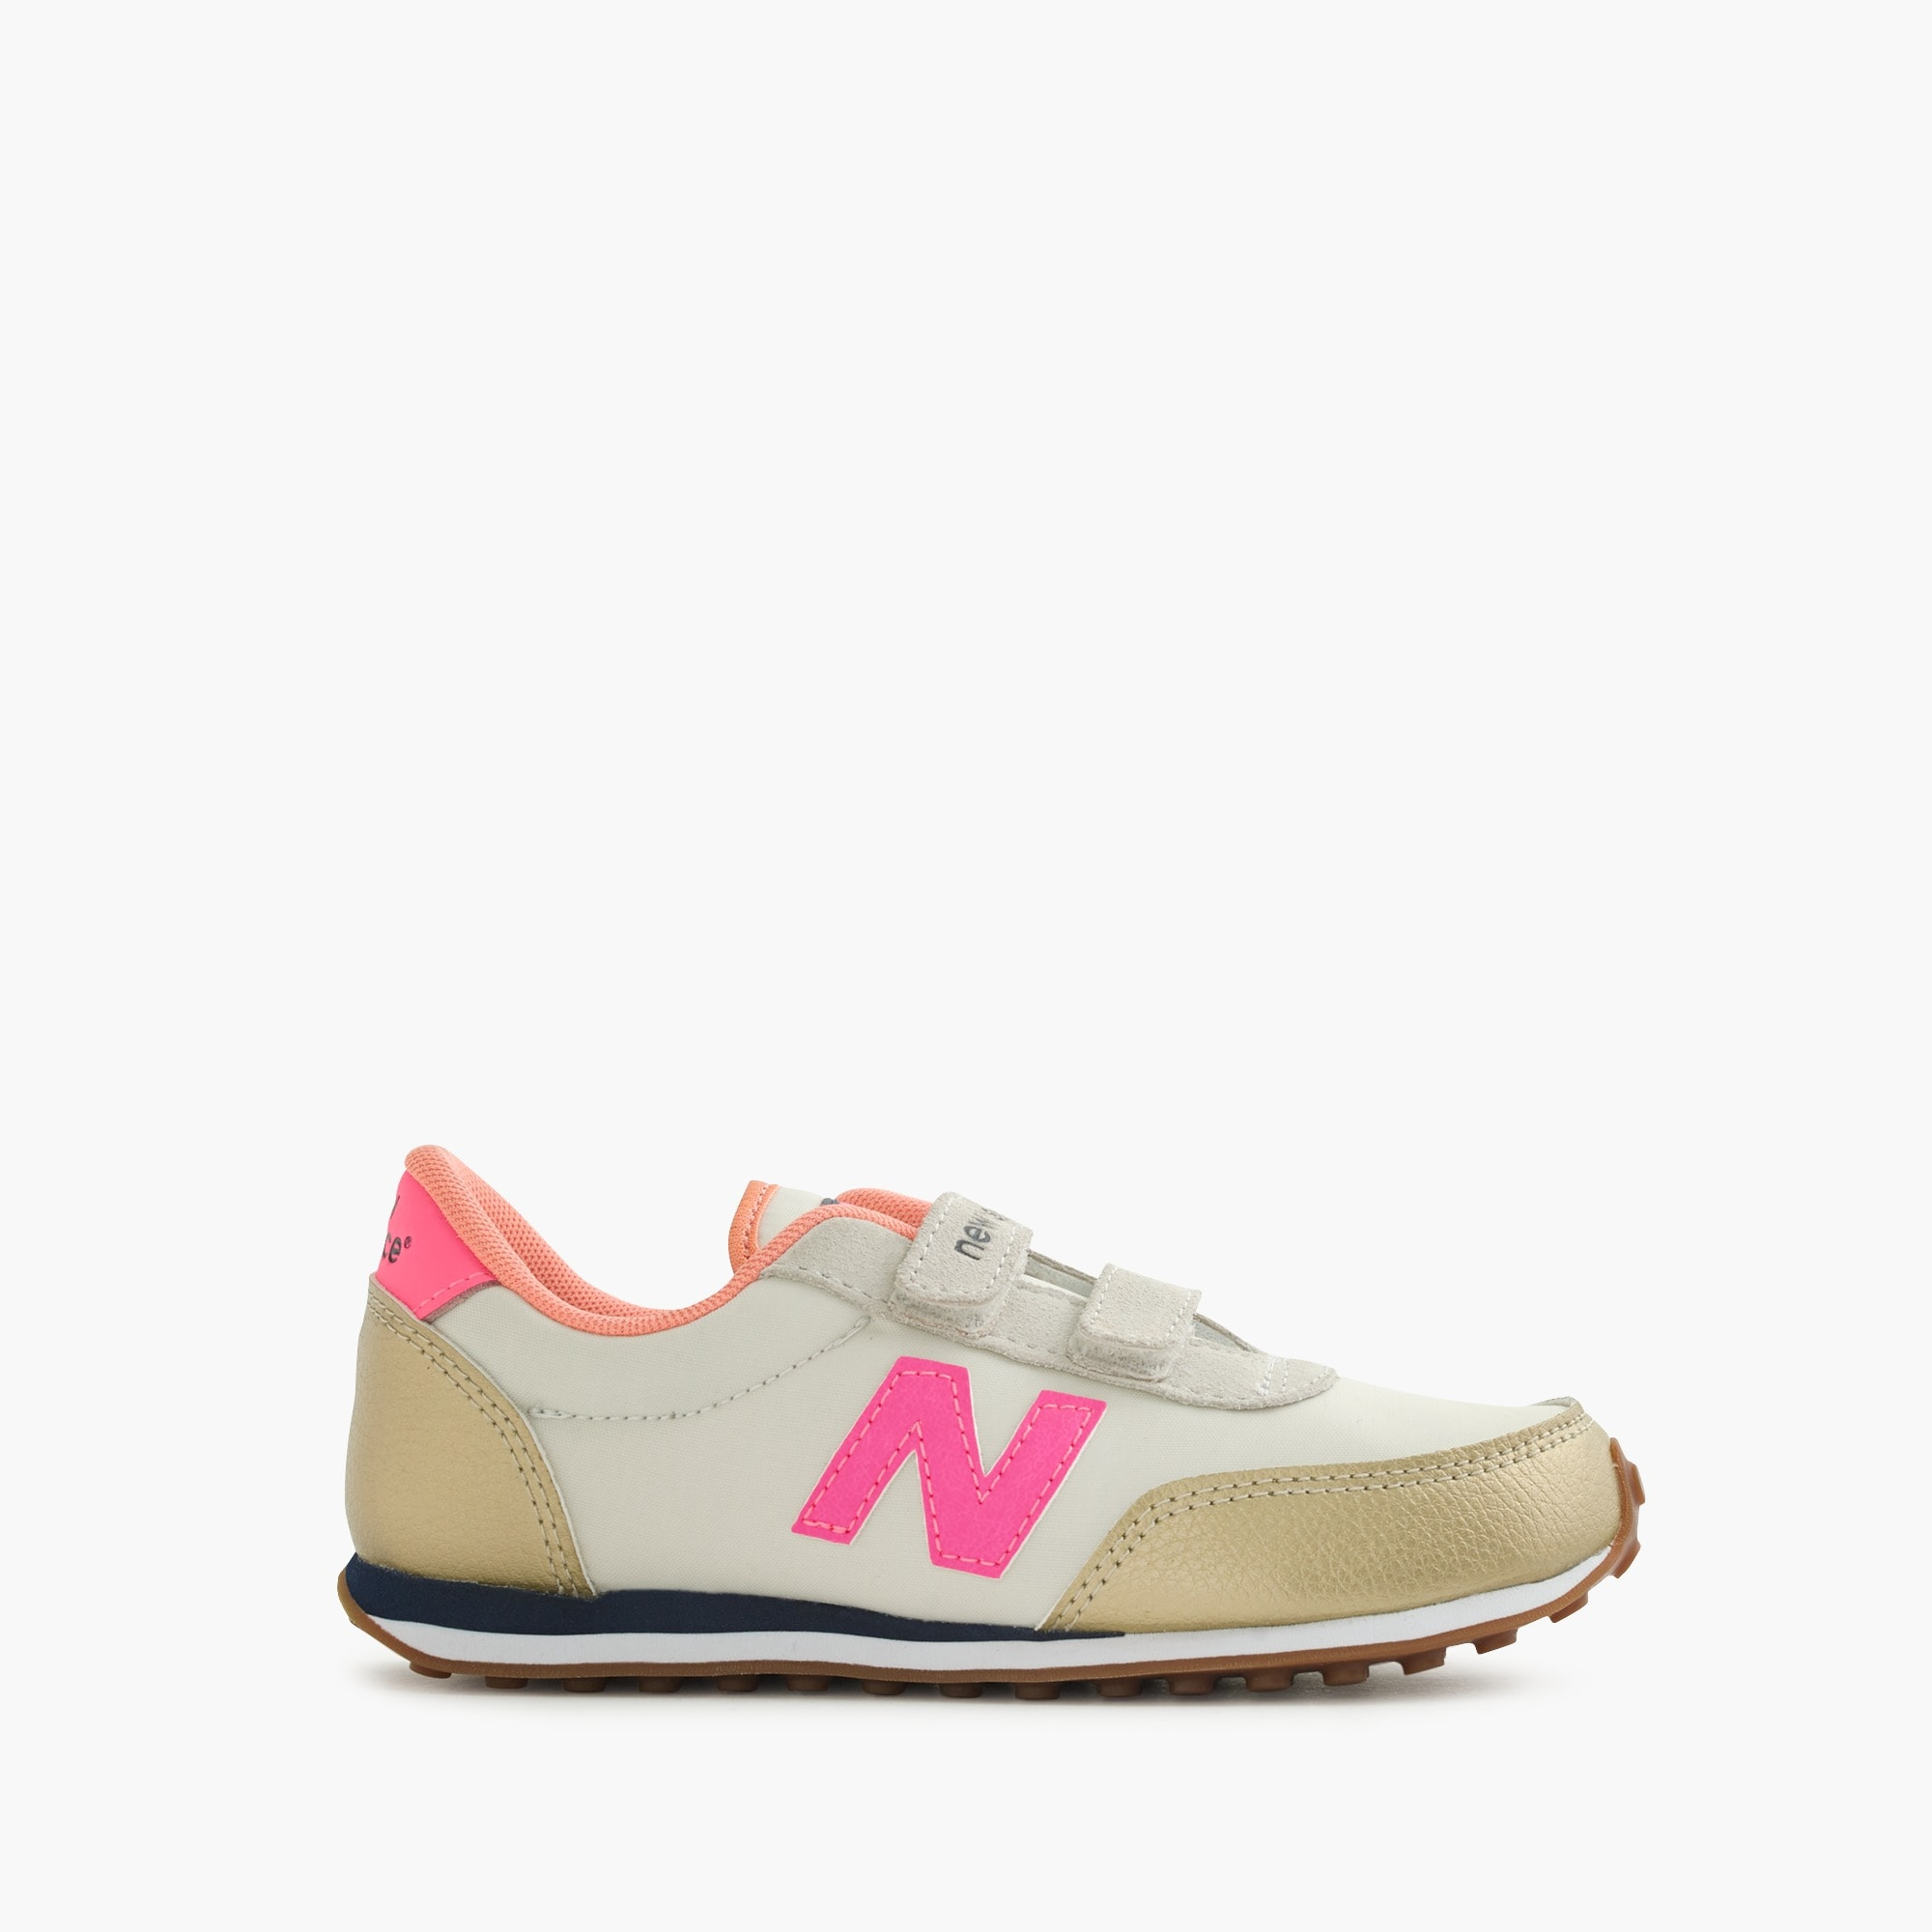 Girls' New Balance for crewcuts 410 sneakers in metallic girl j.crew in good company c